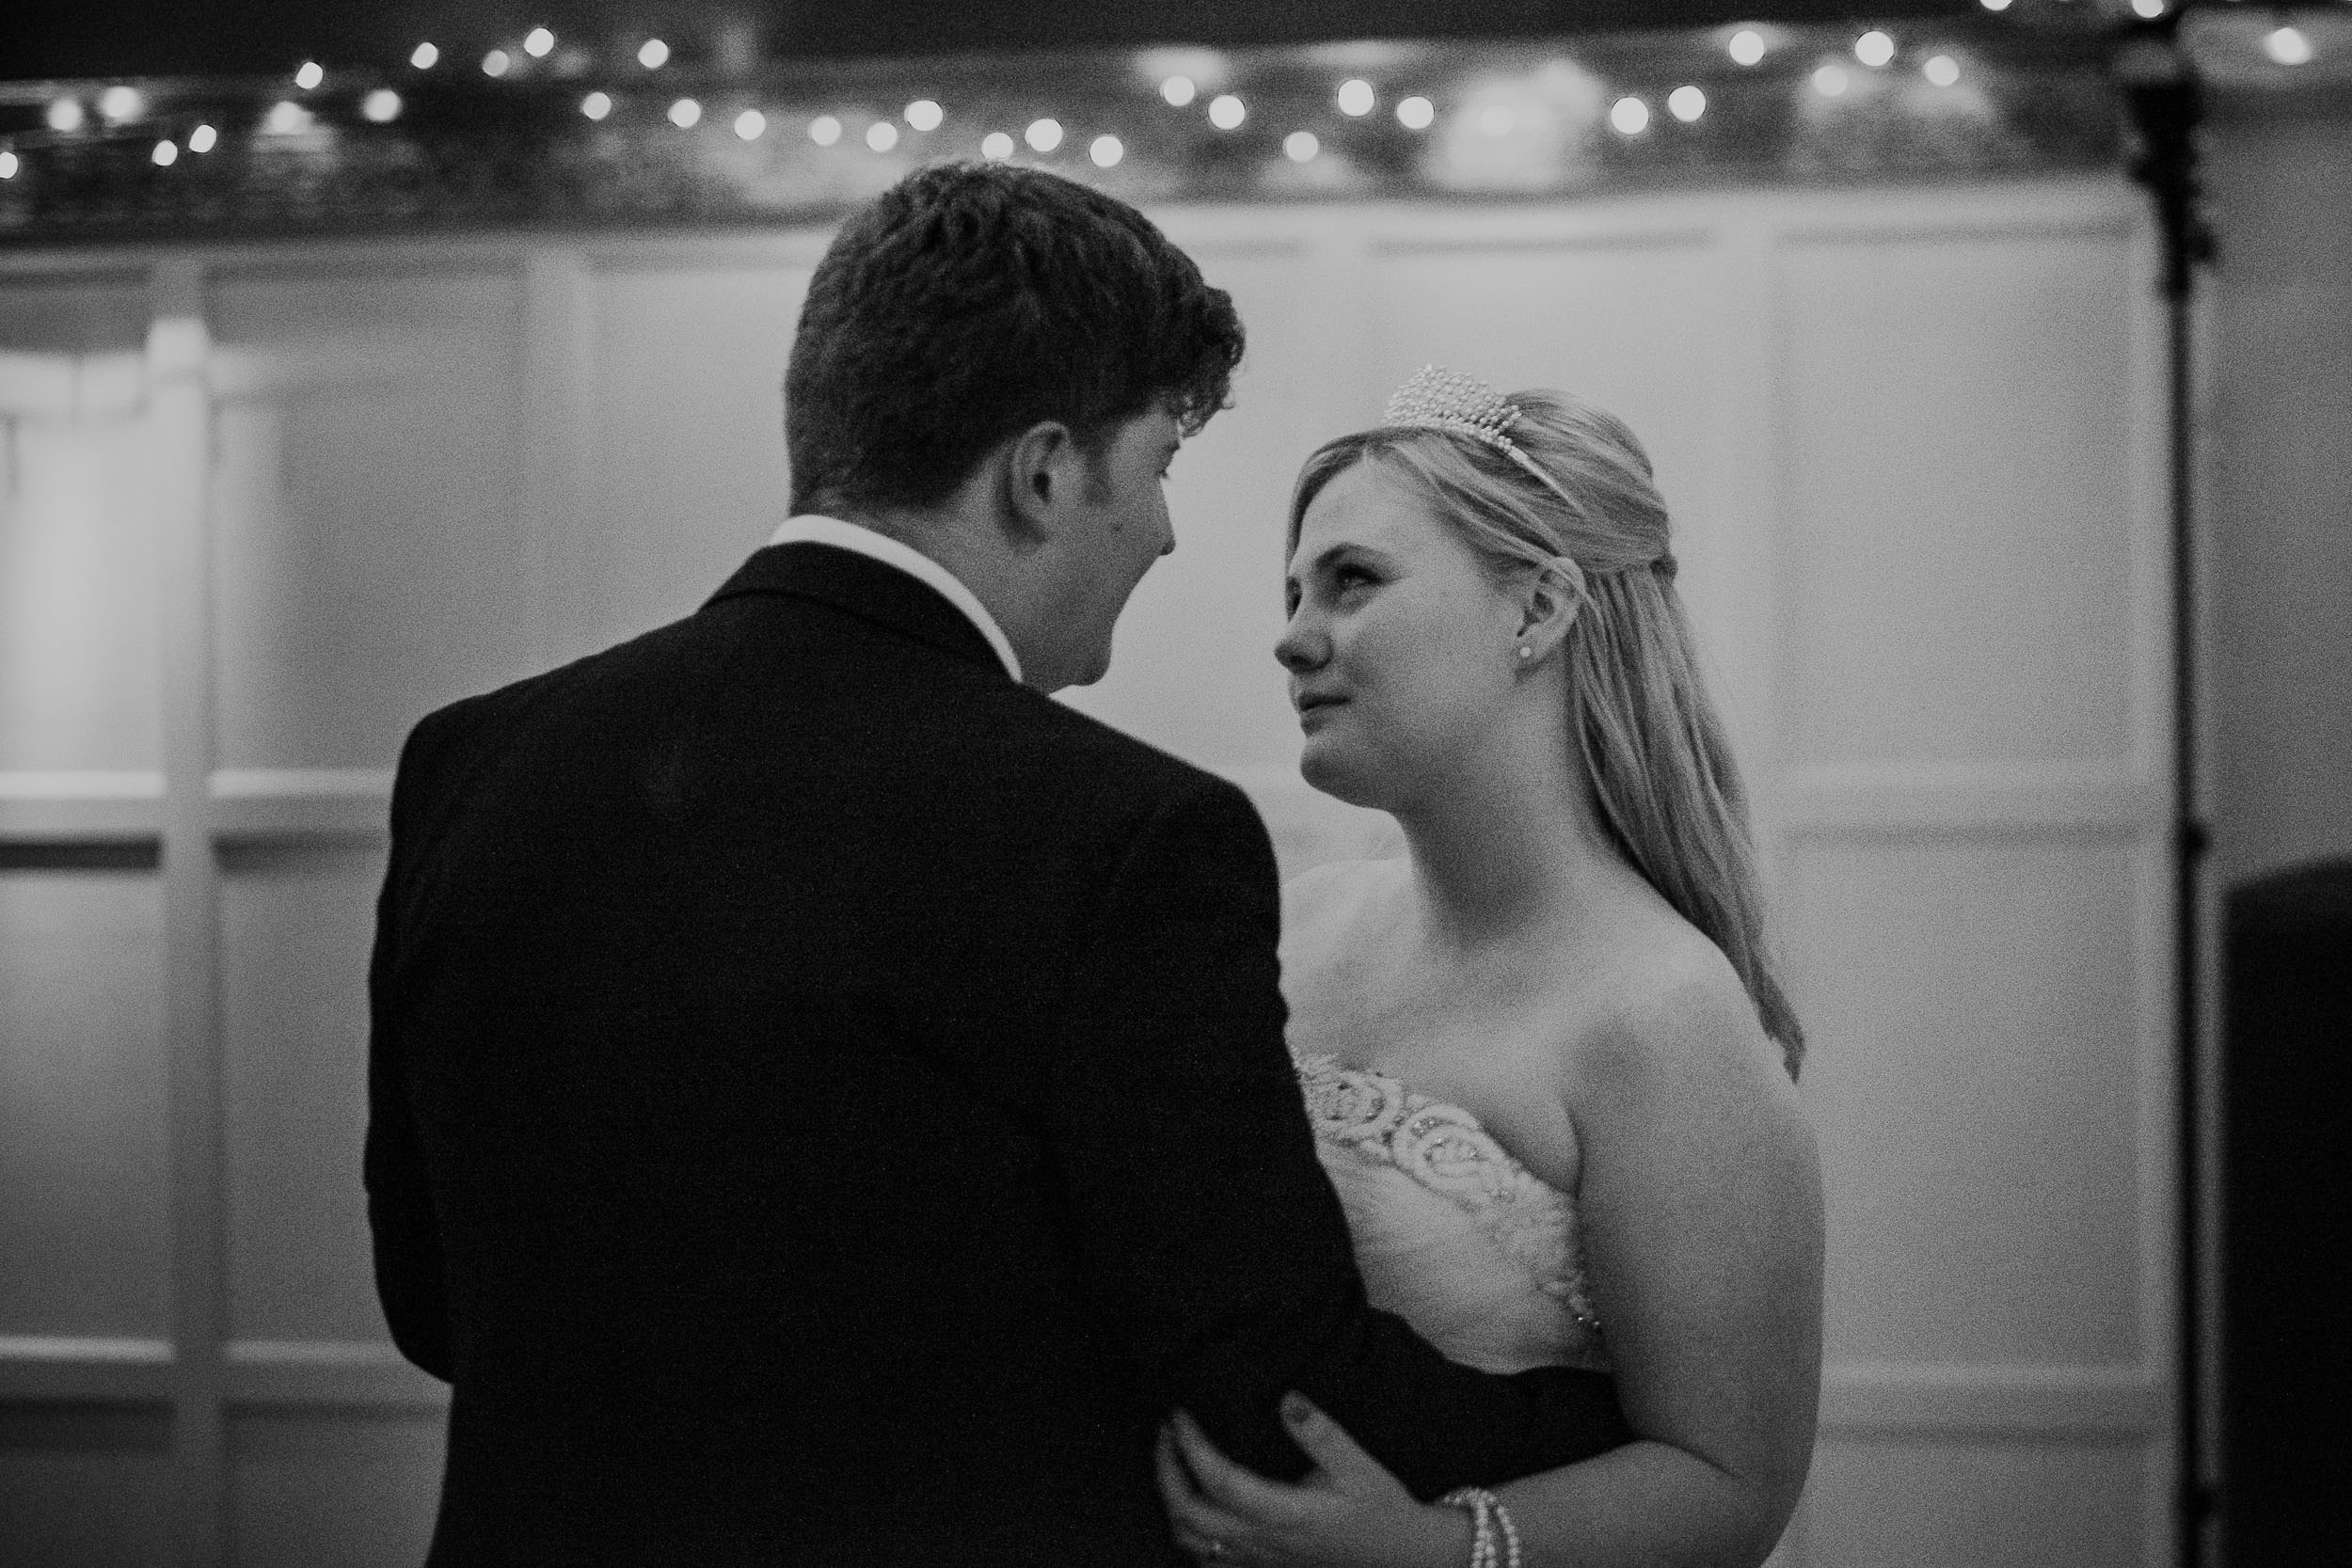 Bride and groom look at each other intensely in grainy black and white photo